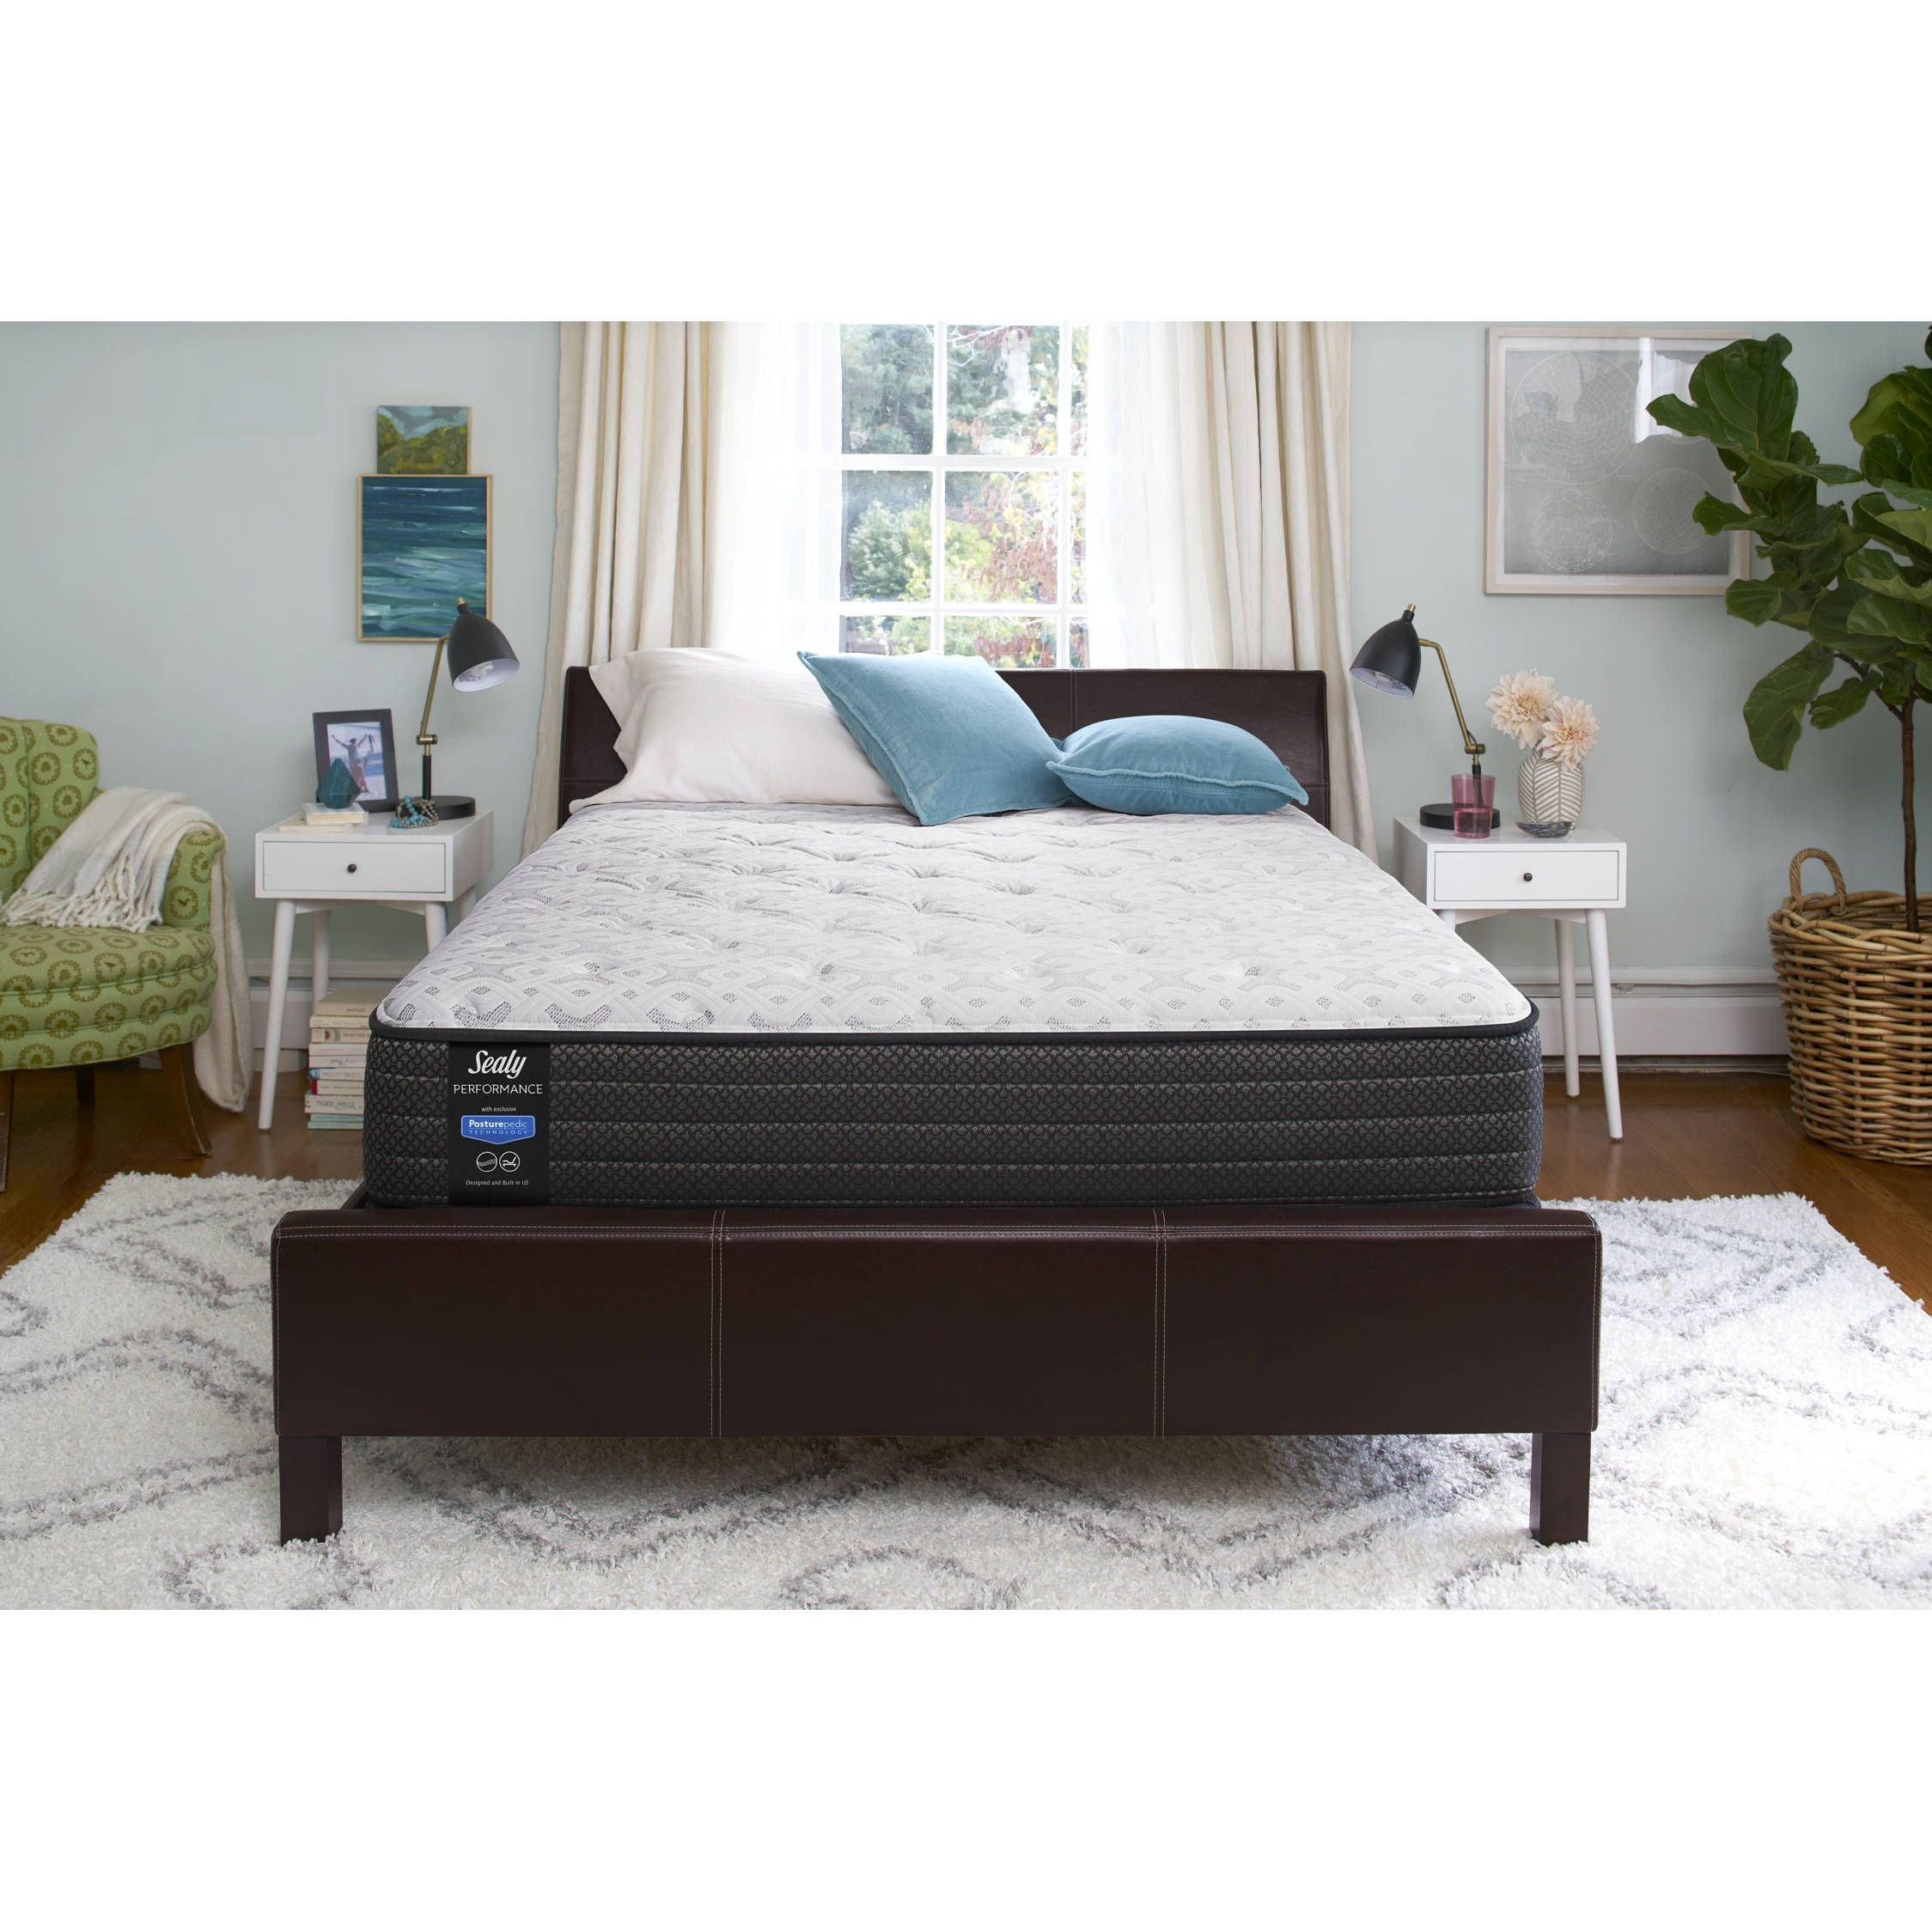 sealy response performance 12 inch plush queen mattress set 9 inch